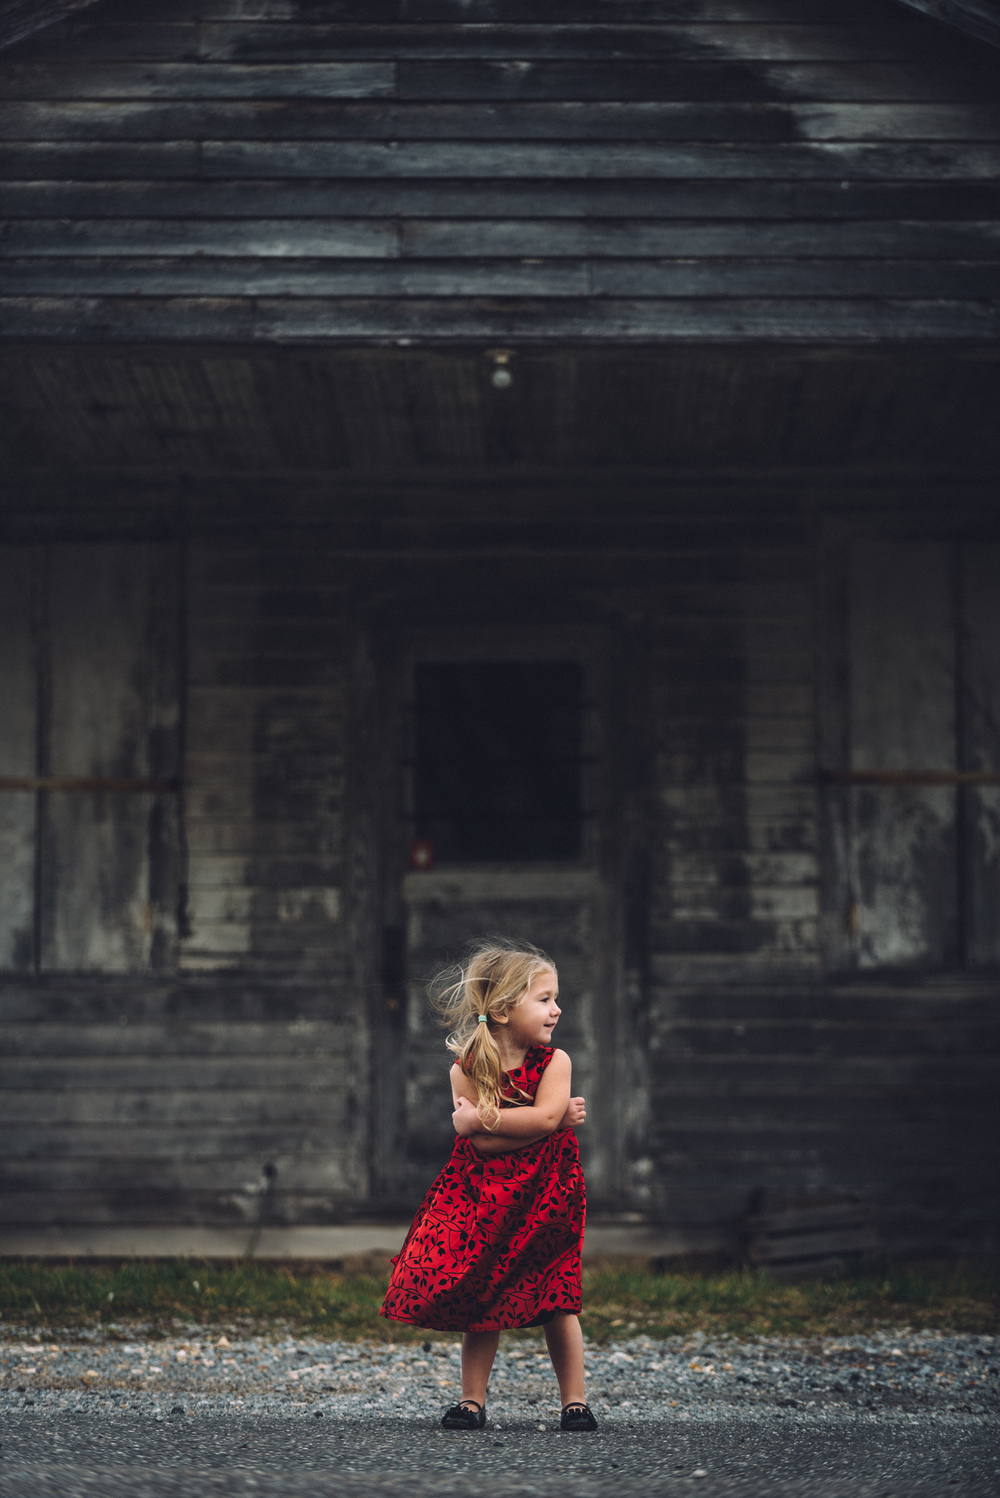 002southerngothic-child-mattrossphotography.com.jpg